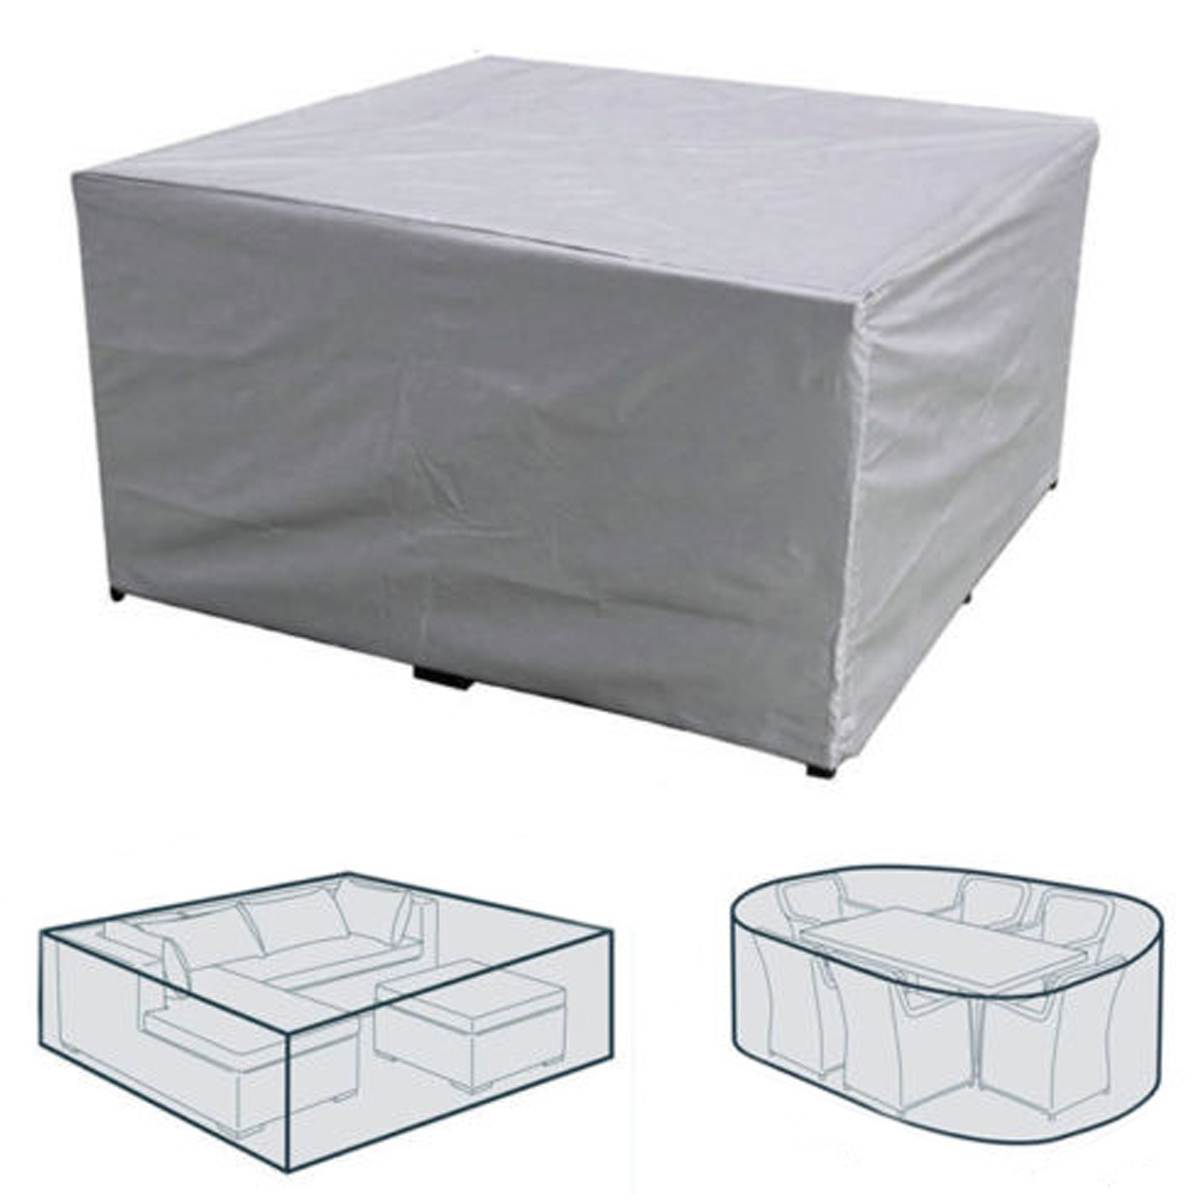 Outdoor Furniture Cover Waterproof Garden Patio Table Chiar Covers Wicker Sofa Set Protection Rain Snow Dust Proof Cover 1